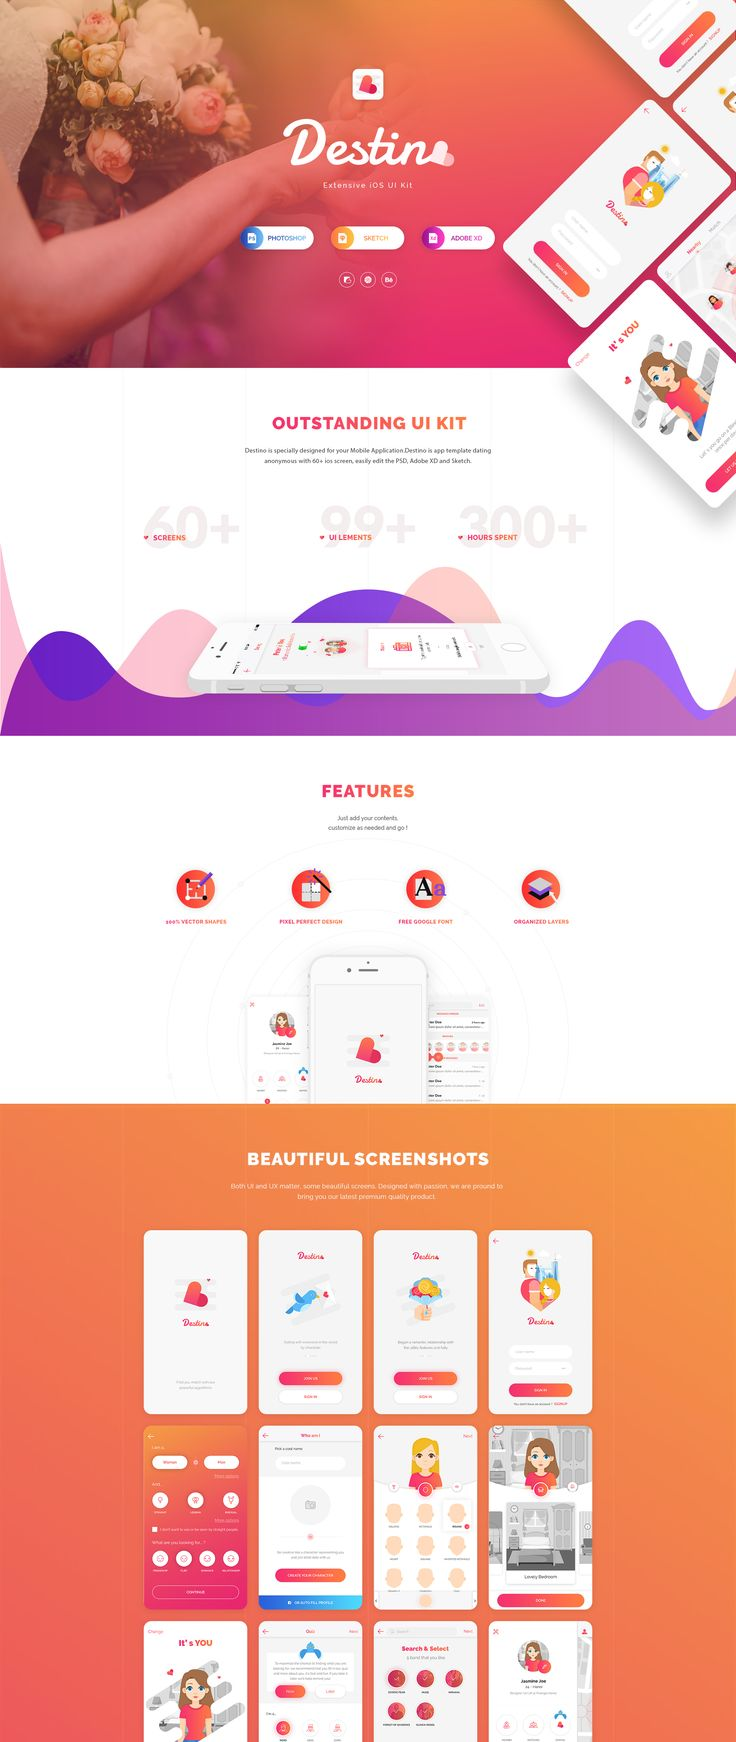 Destino is specially designed for your next Dating Mobile Application. Destino is an anonymous dating app template with 60+ iOS screens which are easy to edit with the Photoshop, Adobe XD and Sketch.